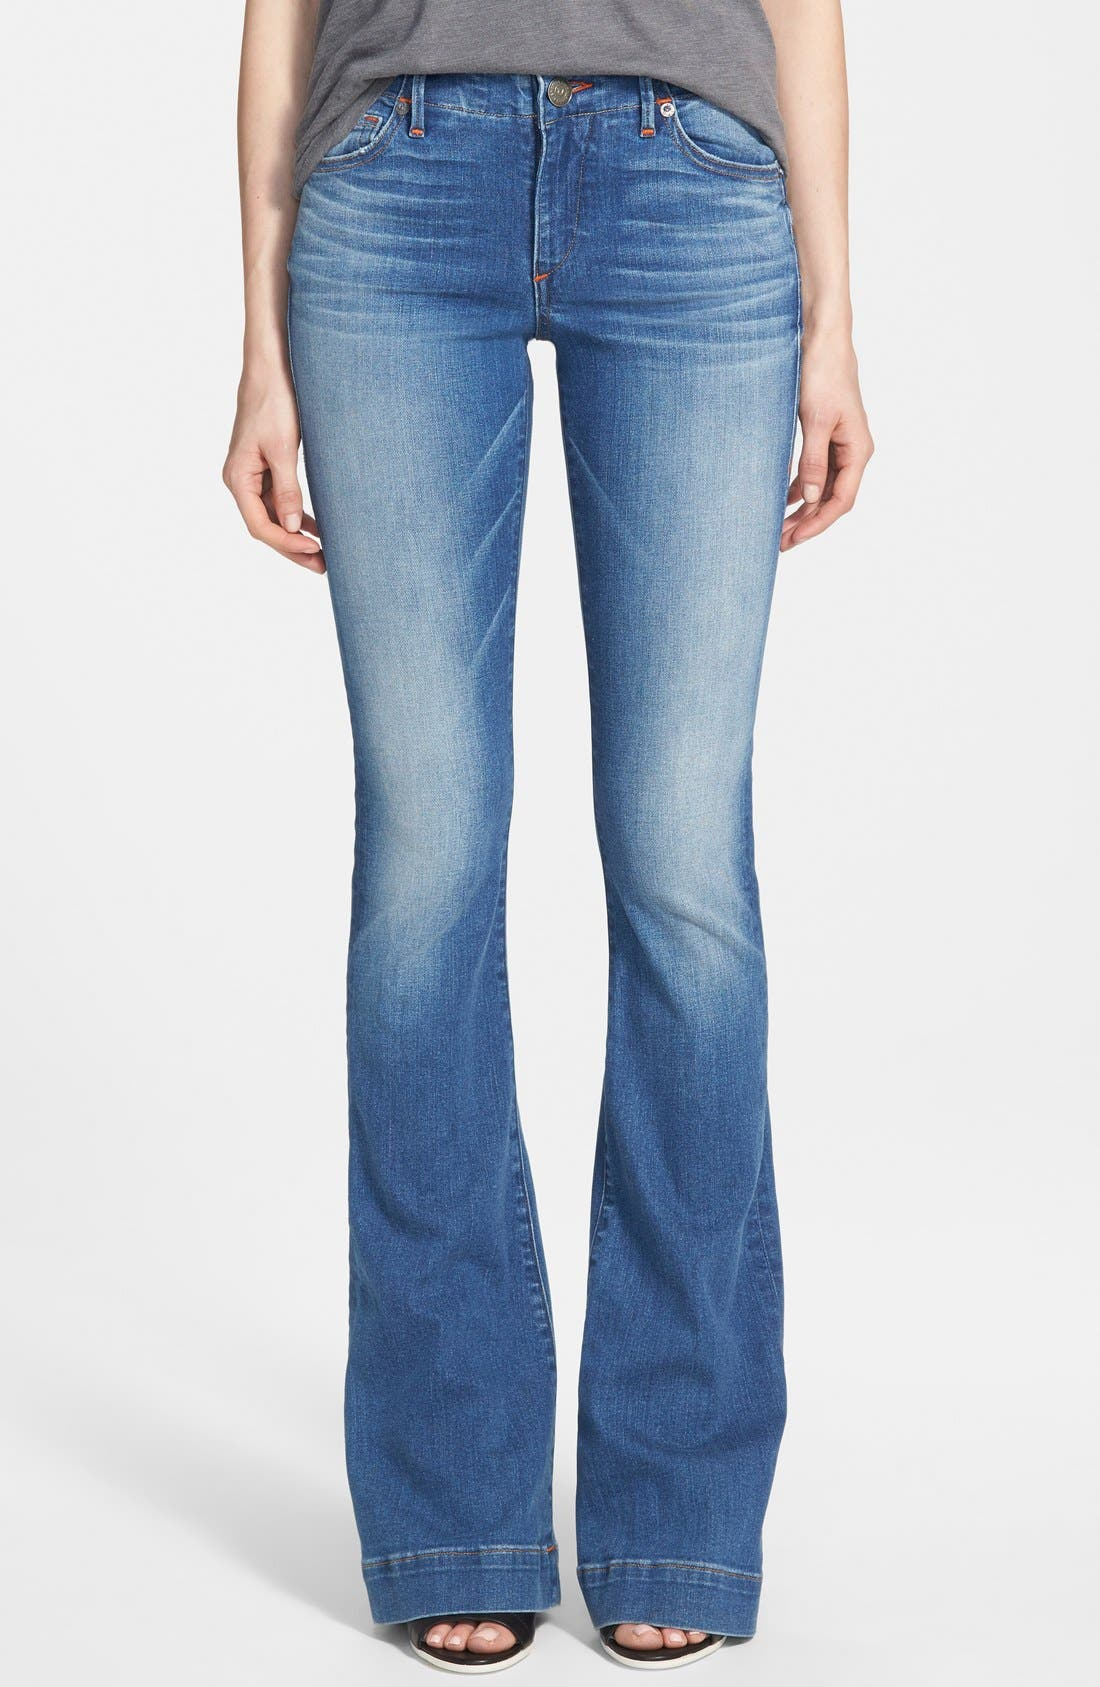 Alternate Image 1 Selected - True Religion Brand Jeans 'Charlize' Flare Jeans (Edenhurst)